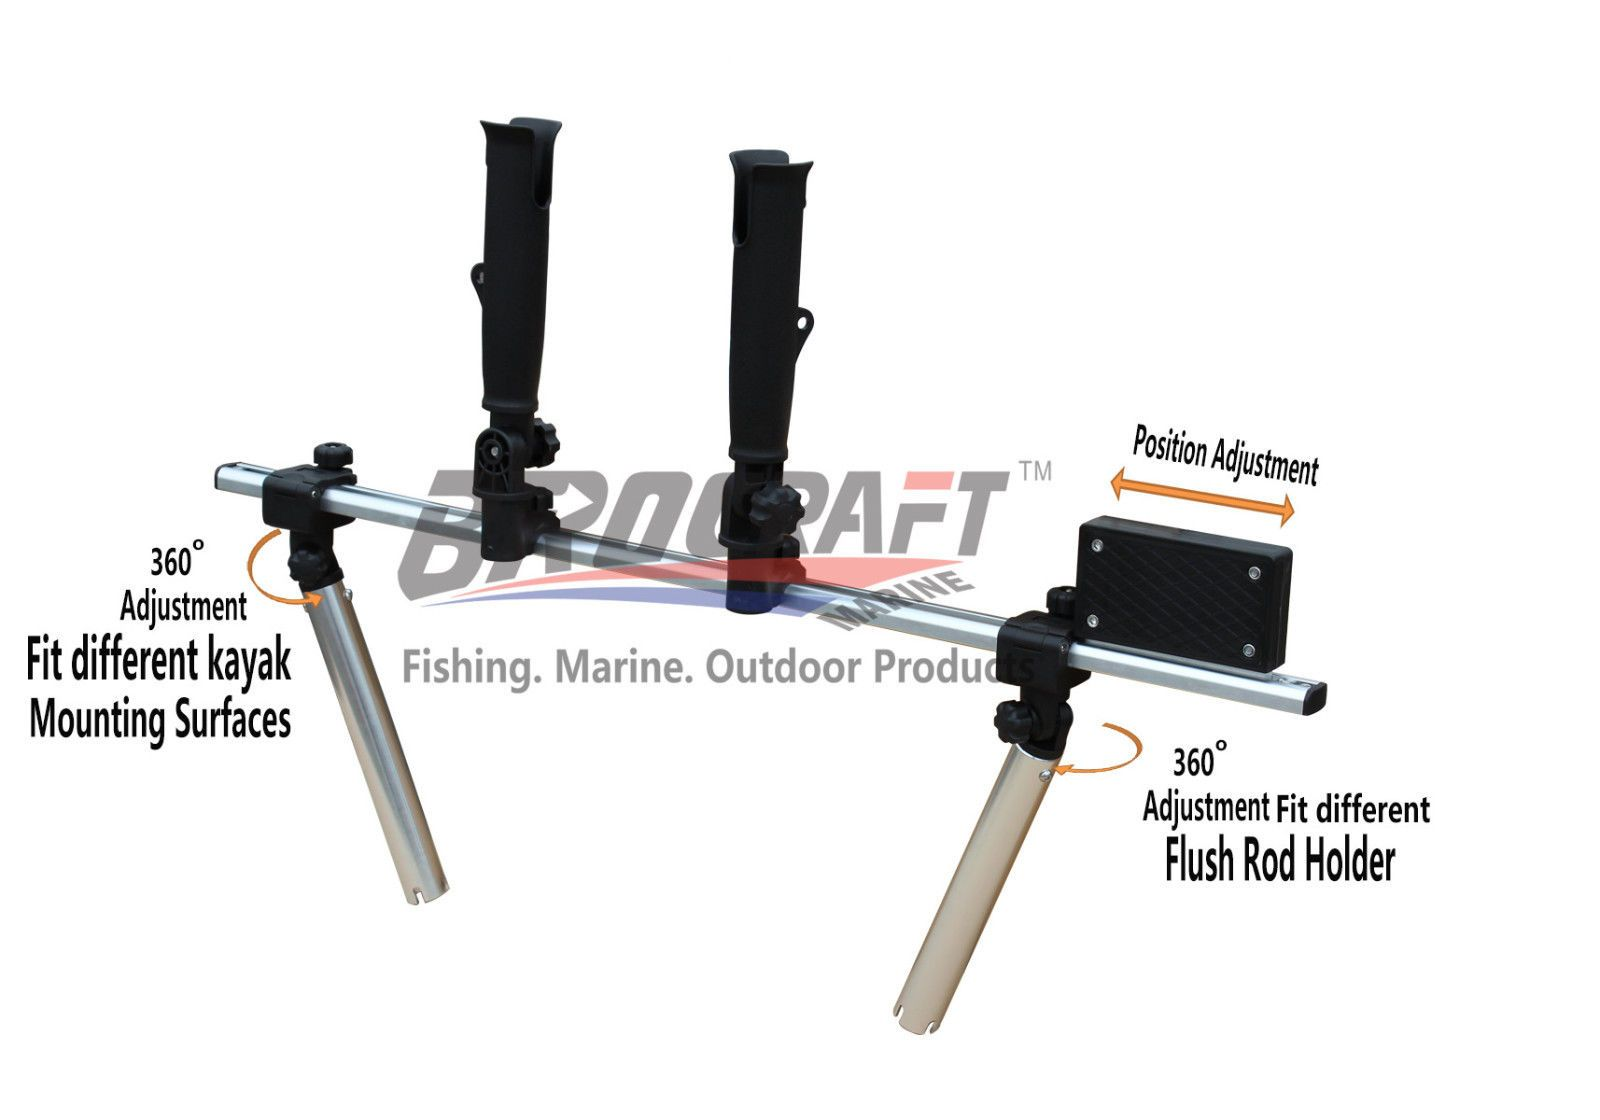 Kayak Trolling Motor Mount Camp survival Pinterest Kayaks